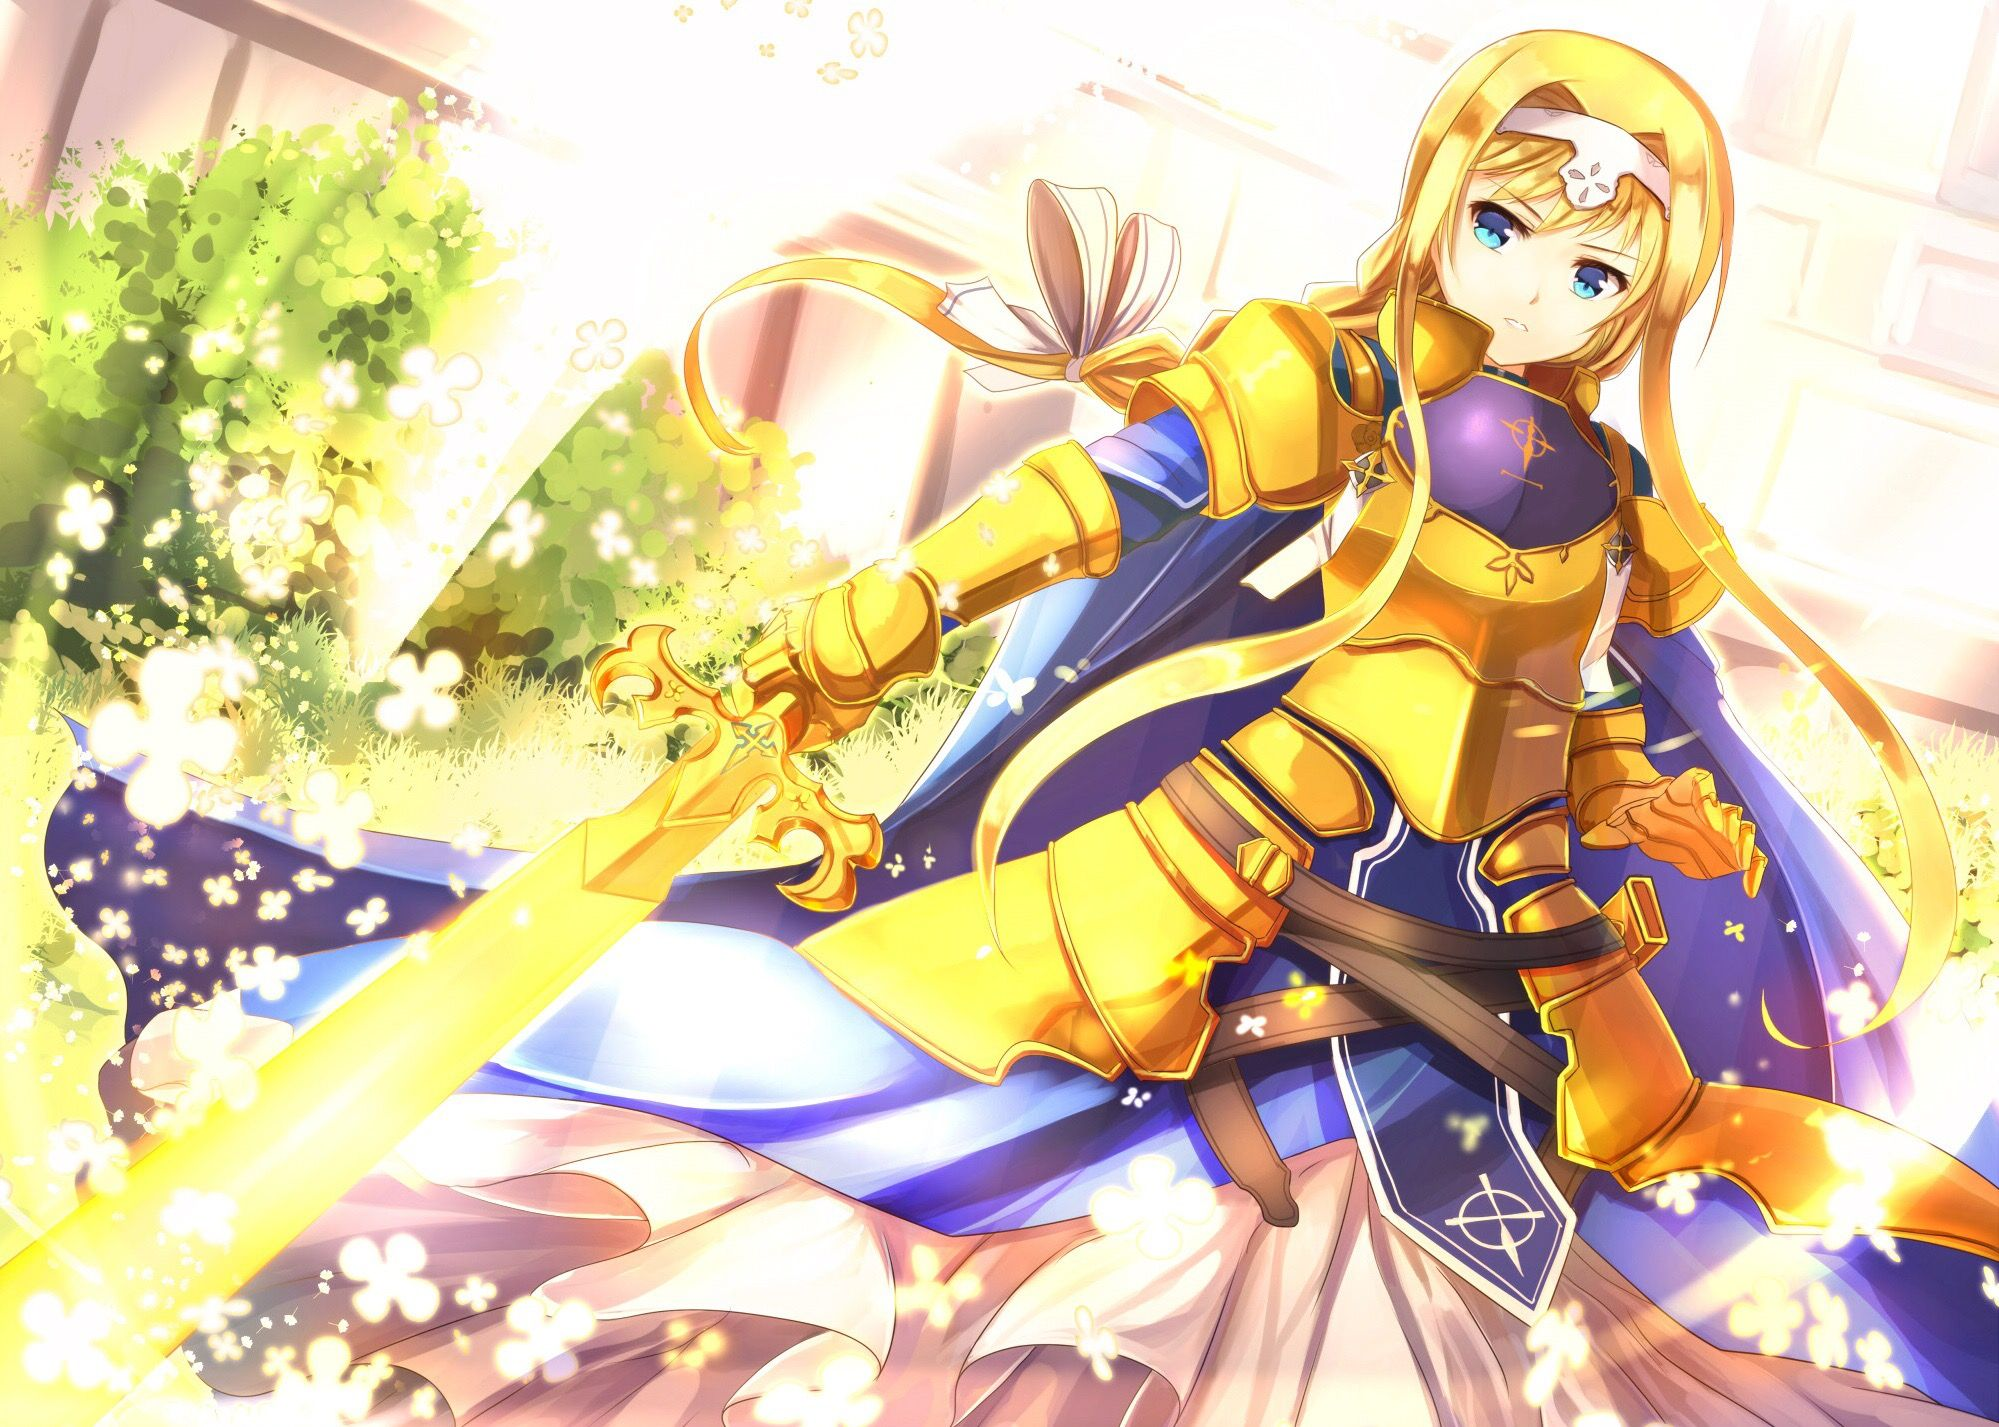 Pin by 孤独の觀測者 on anime Sword art online, Character